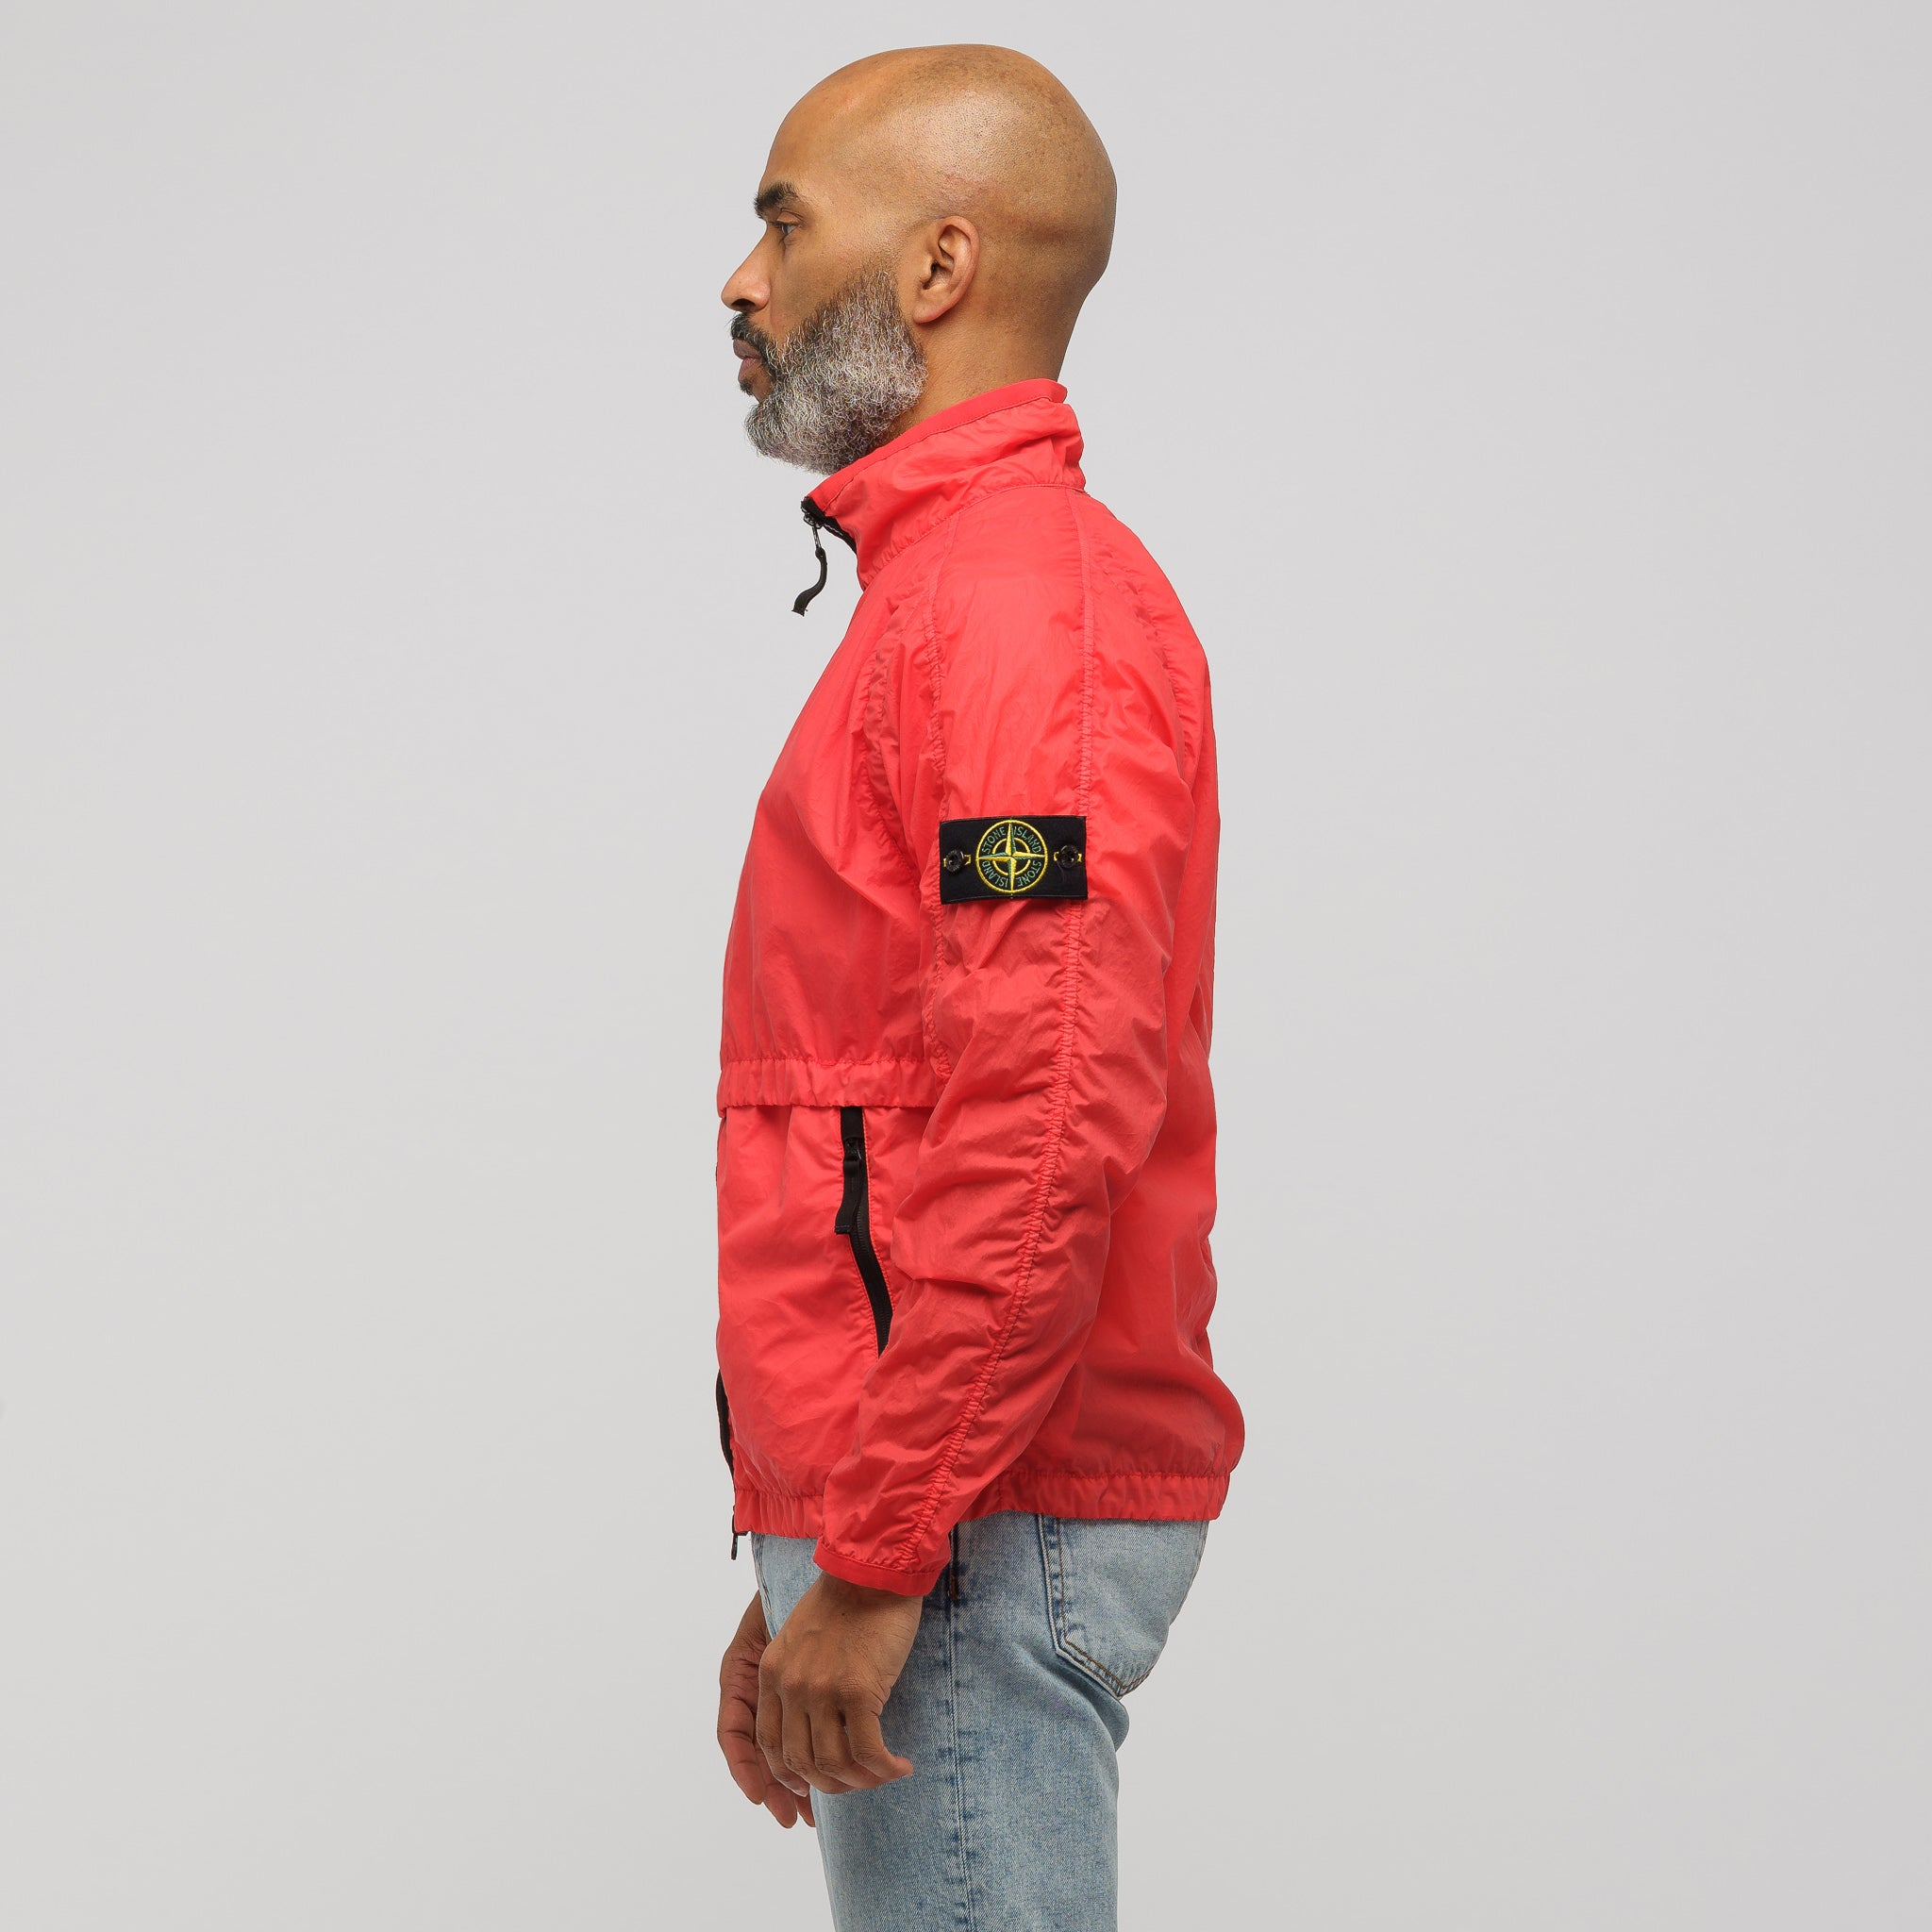 42031 Lamy Velour Jacket in Red Orange